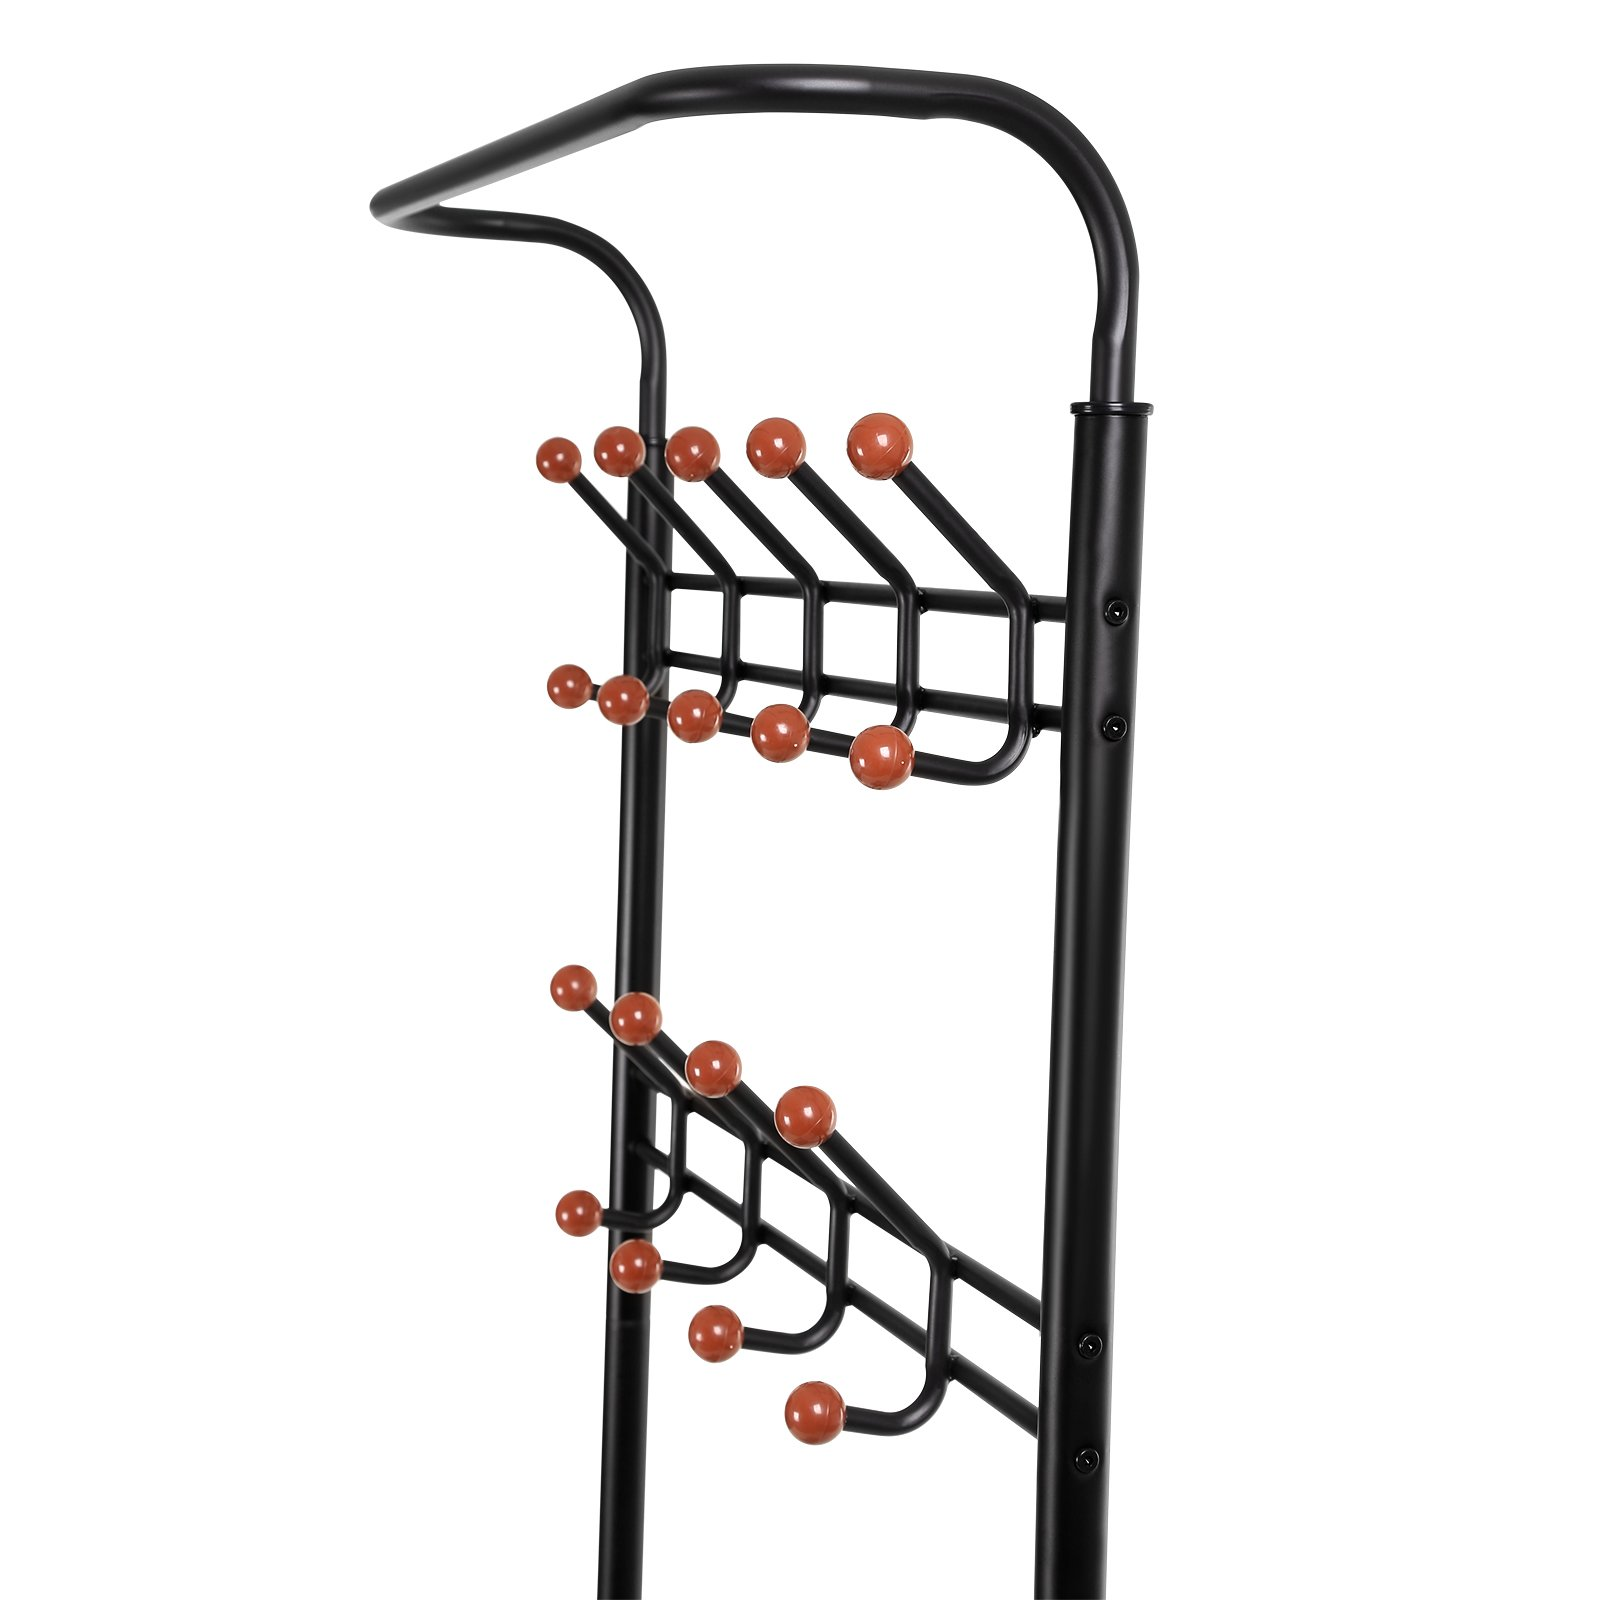 songmics entryway coat rack with storage shoe rack hallway organizer 18 hooks and 3 tier shelves. Black Bedroom Furniture Sets. Home Design Ideas